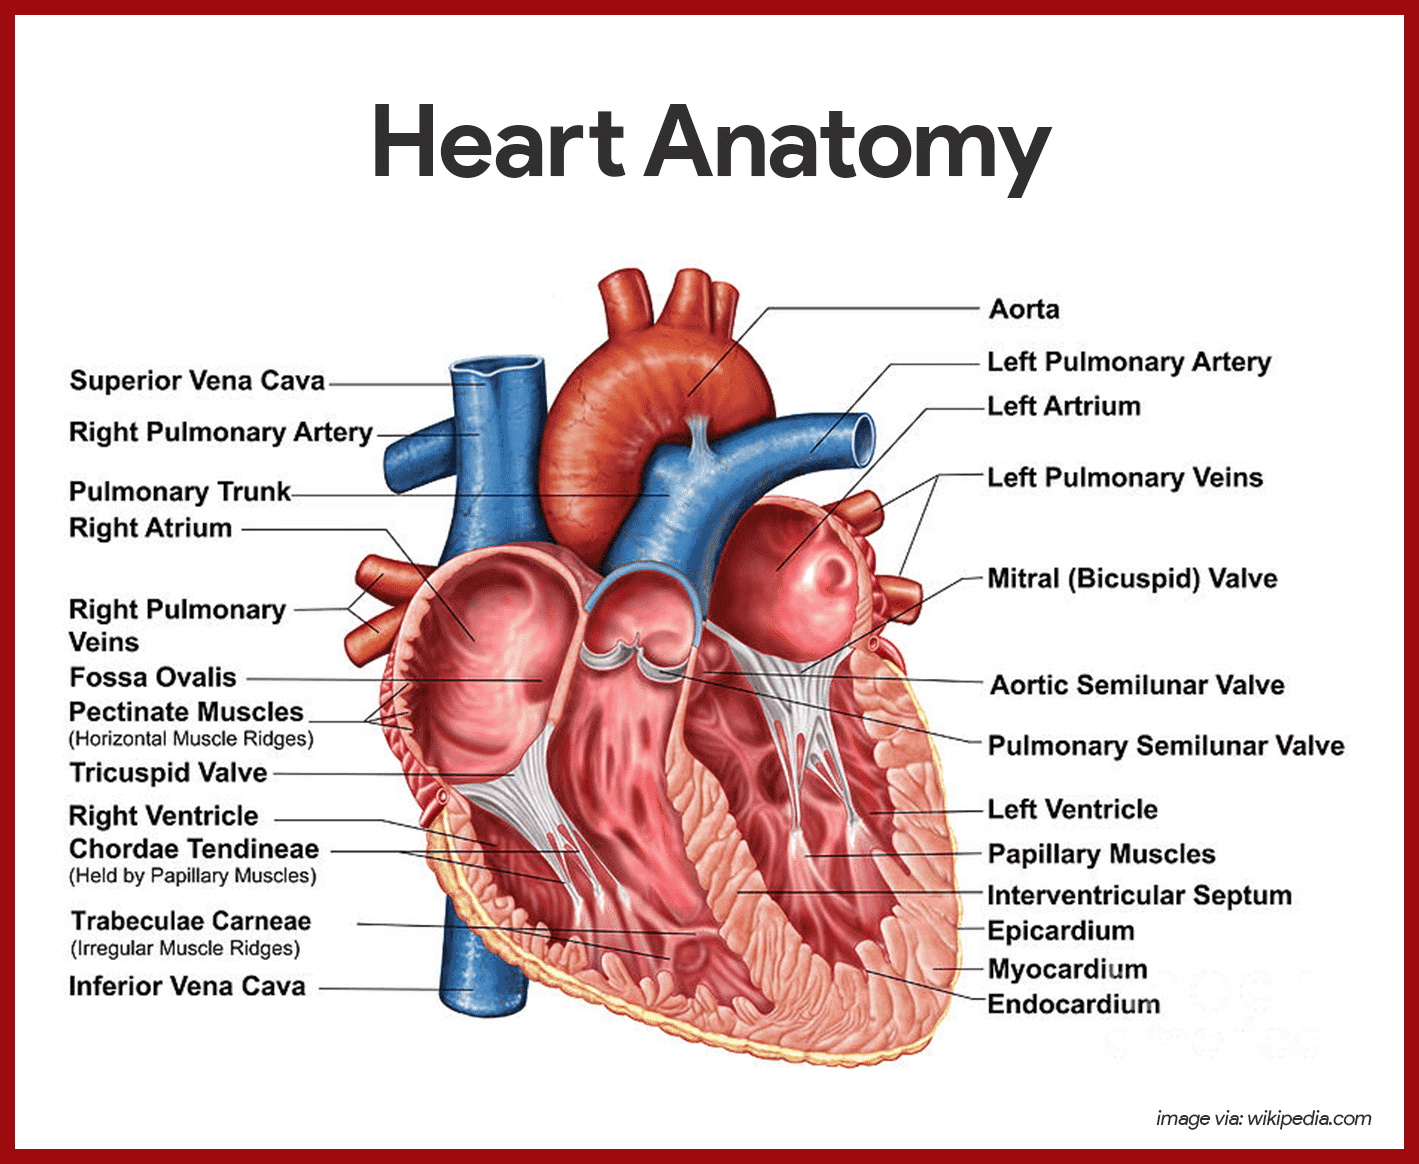 Cardiac vascular anatomy